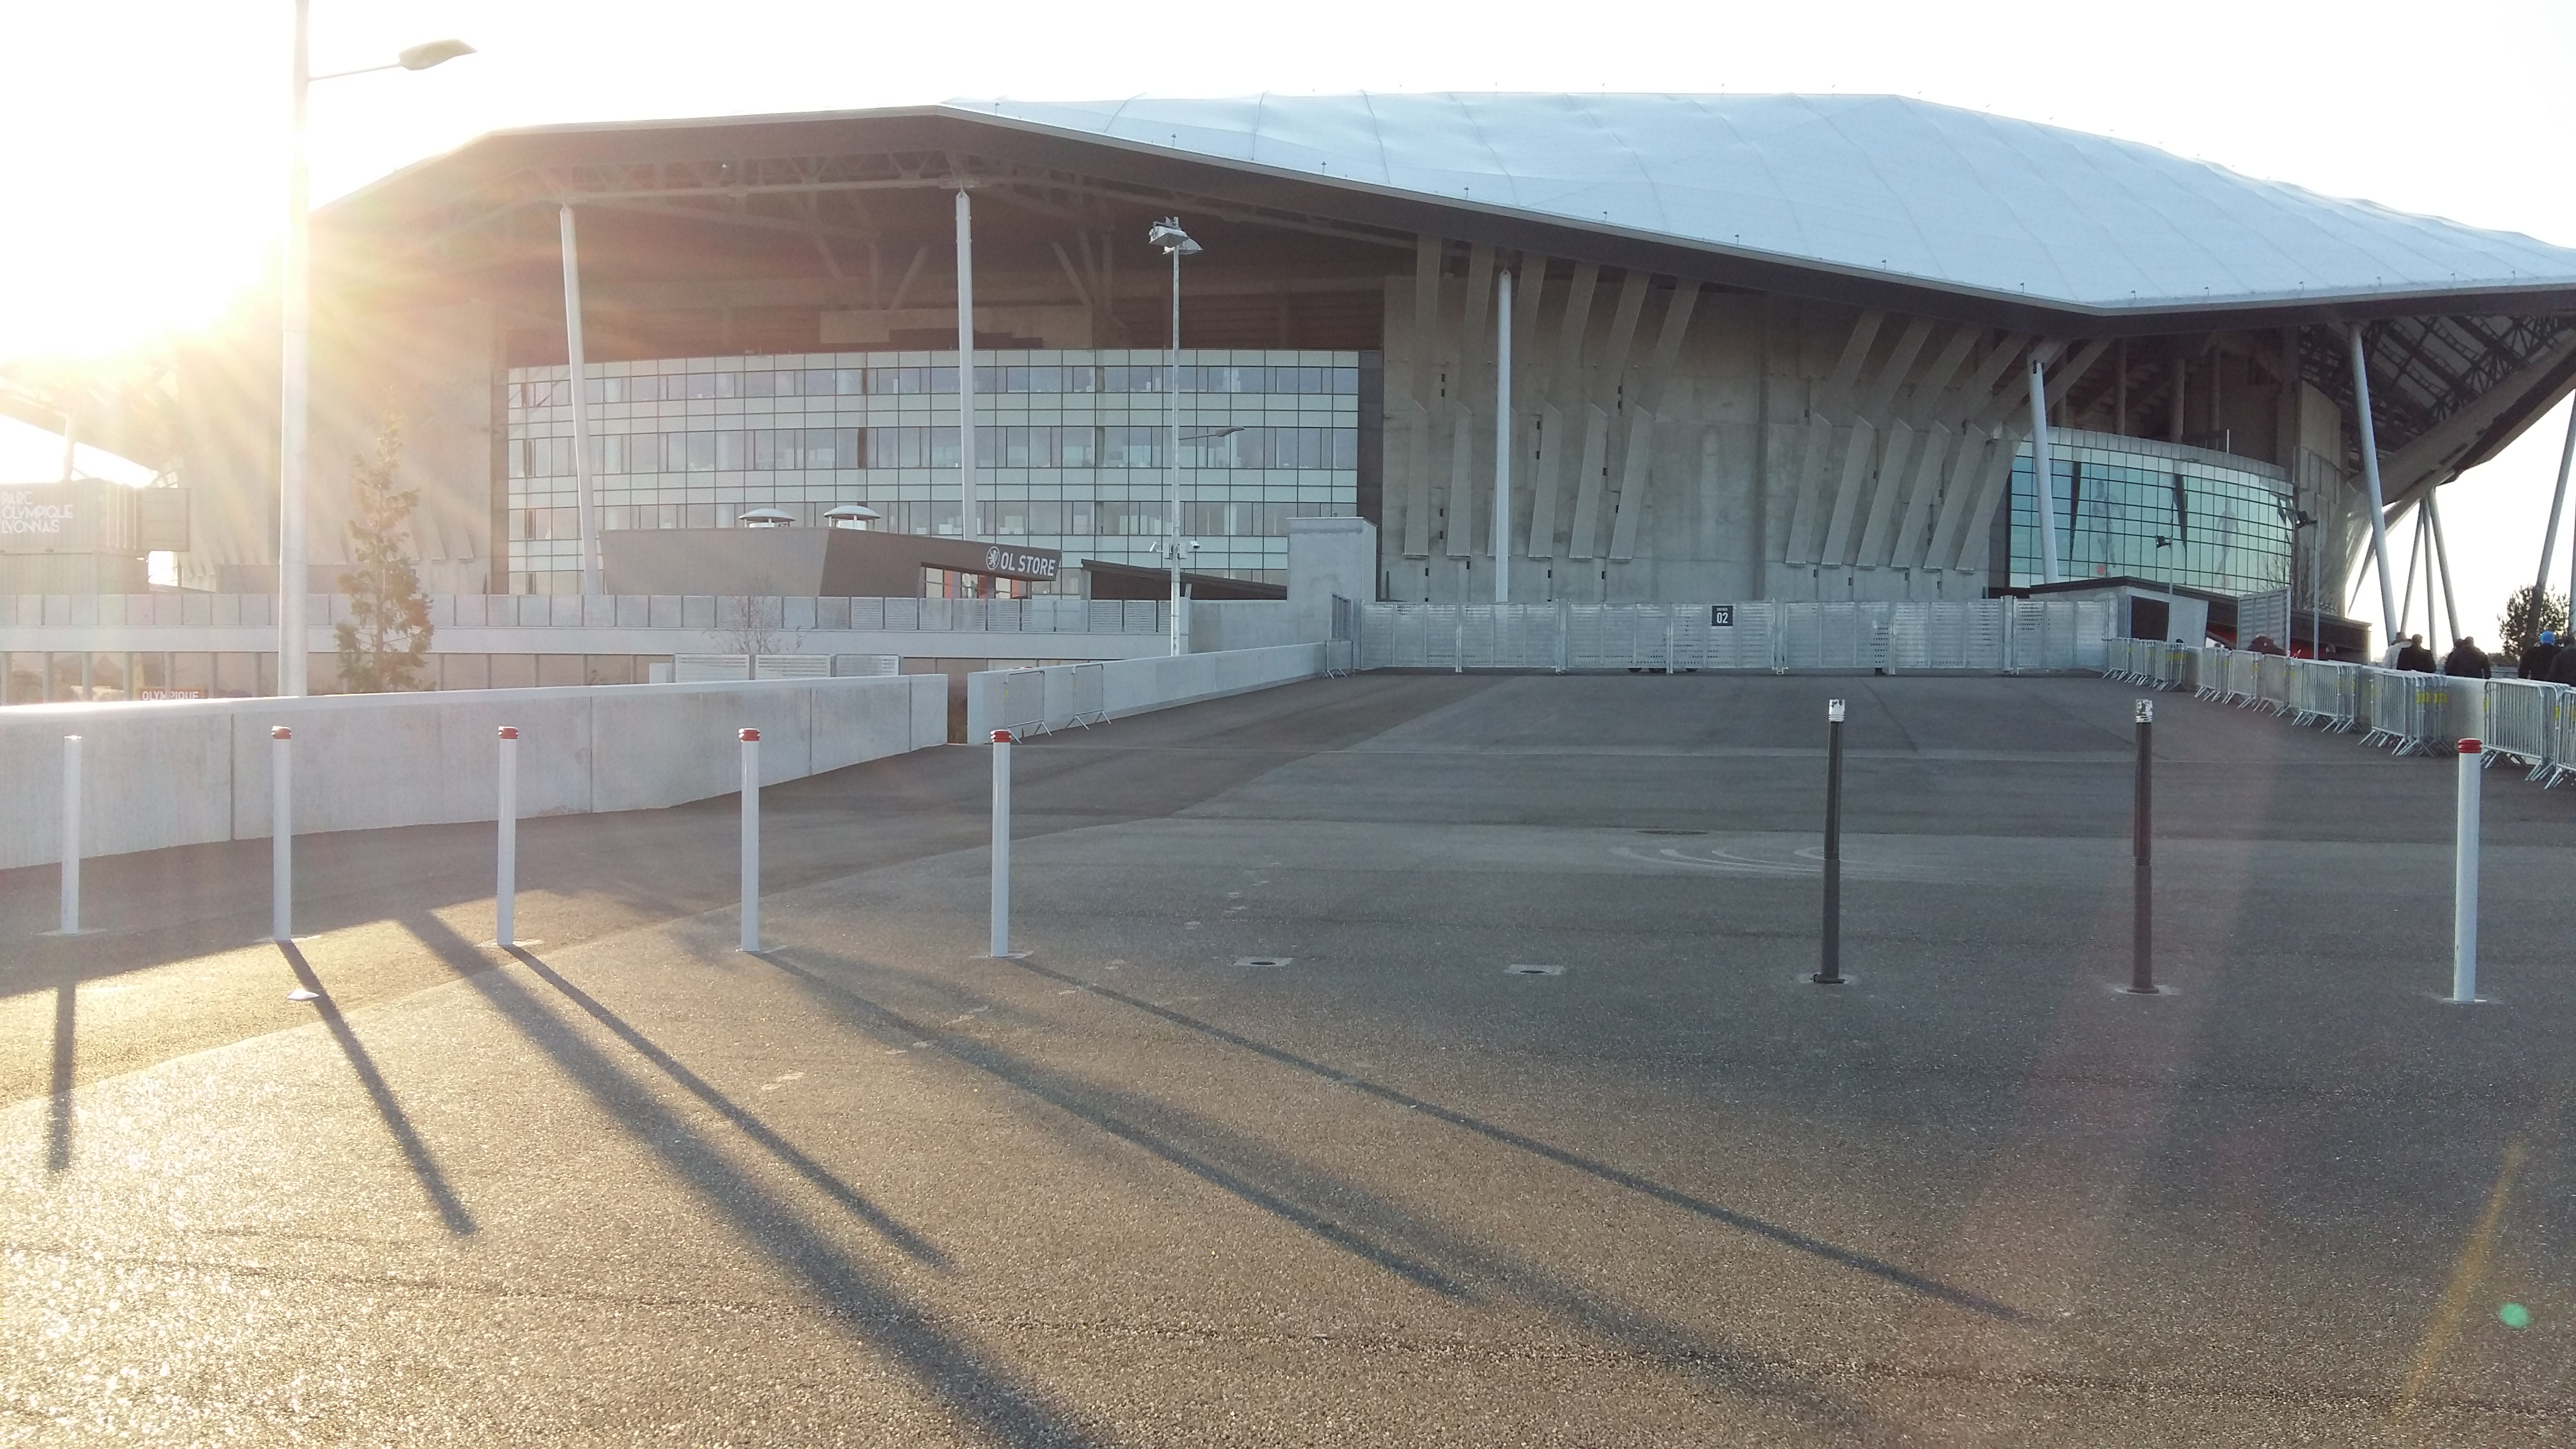 Photo of the outside of the Parc OL stadium in Lyon, France.